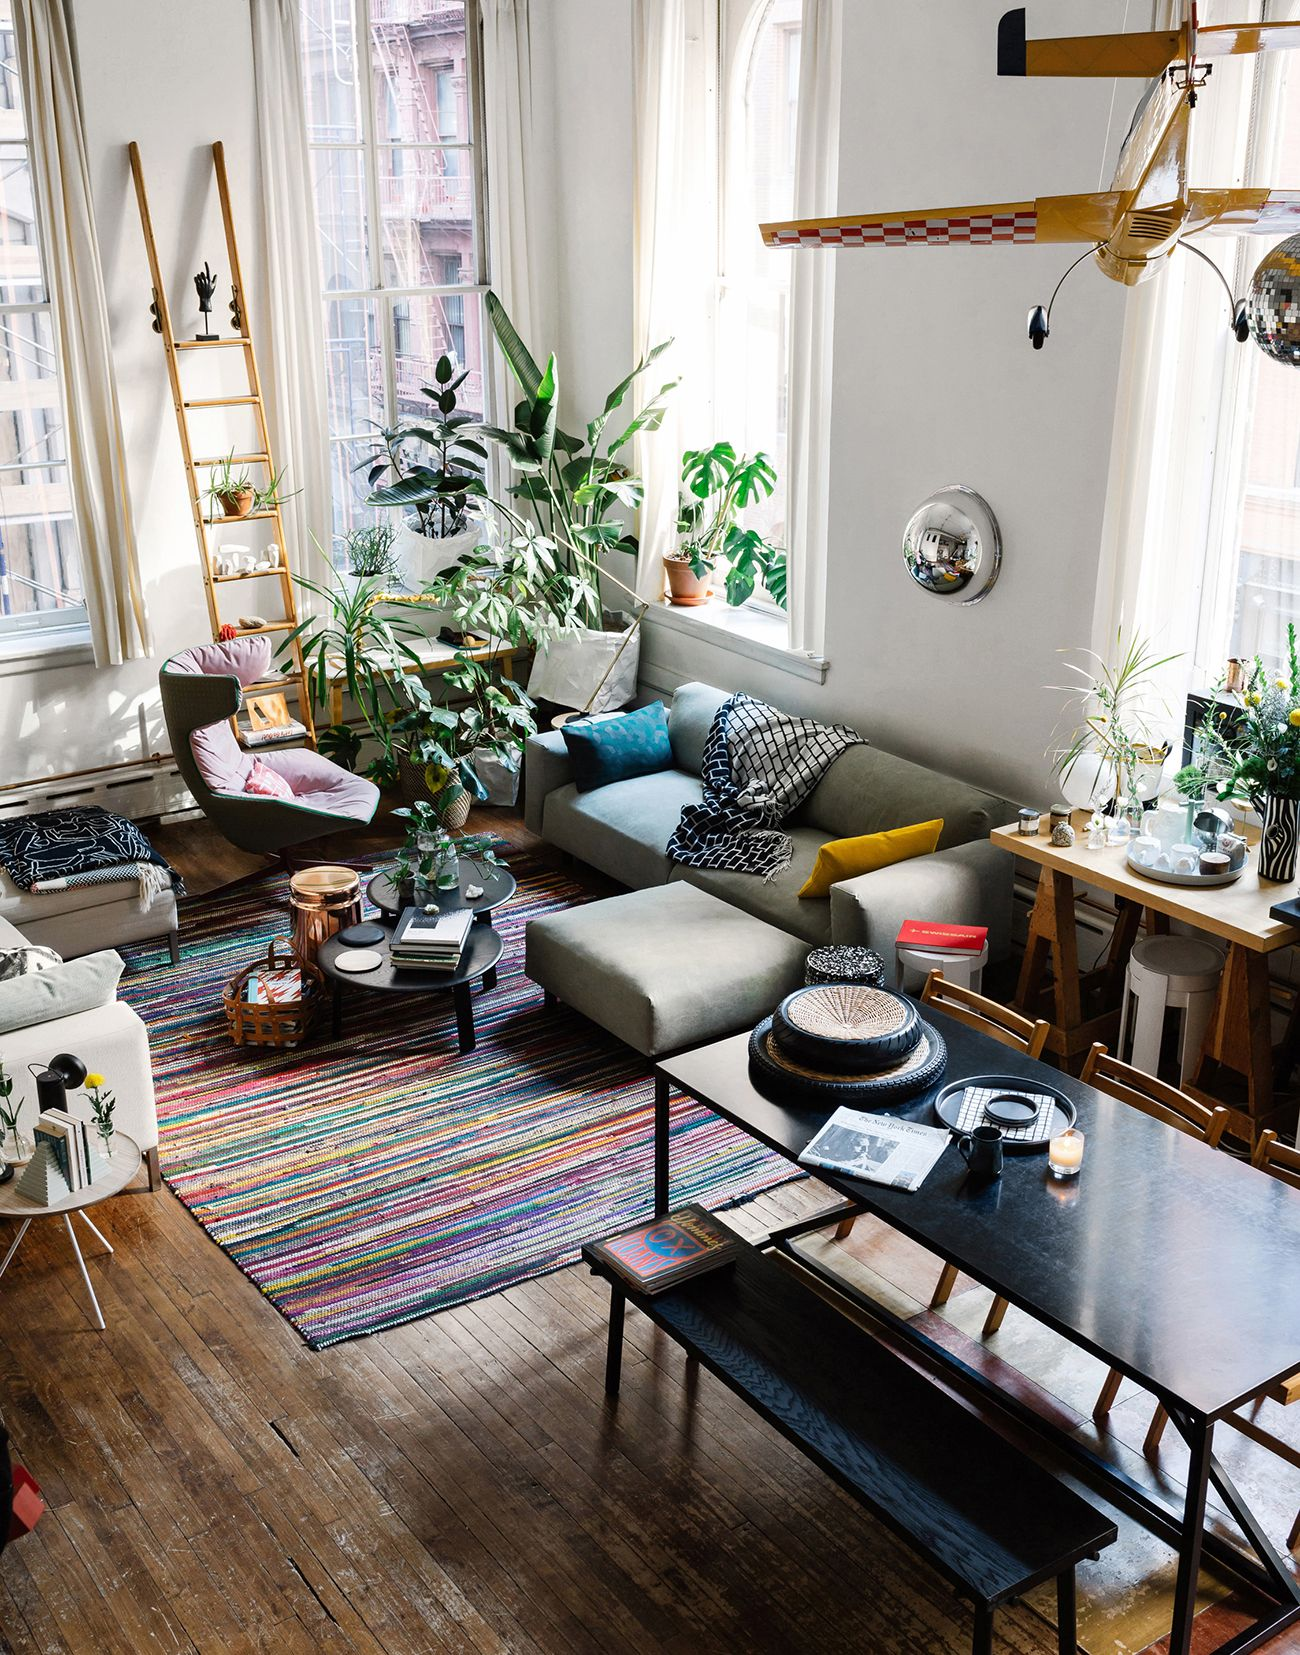 Pieterjan mattan tribeca home tour with hem colorful interior design living area living spaces